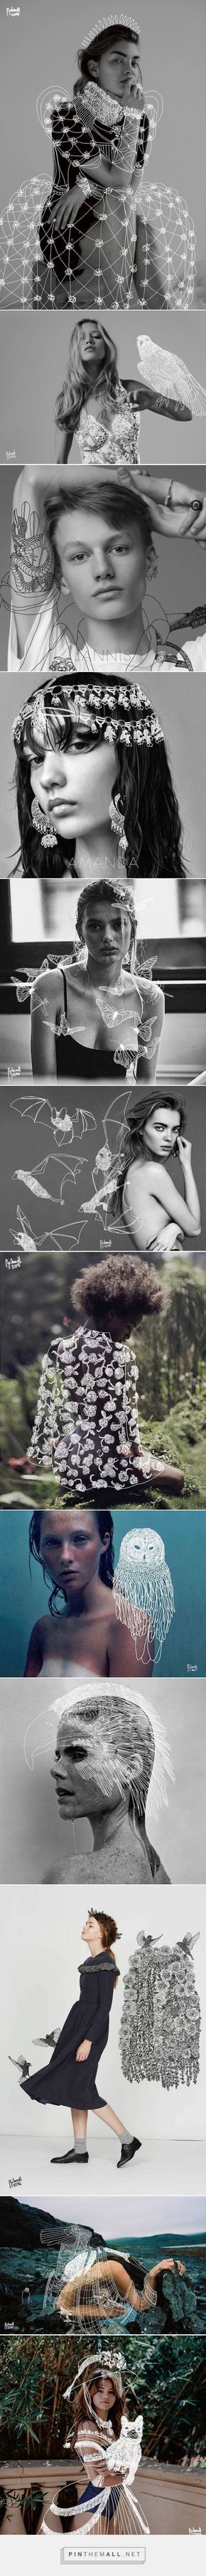 Dr. Propolus Treats Serious Fashion Photos with Lighthearted Doodles